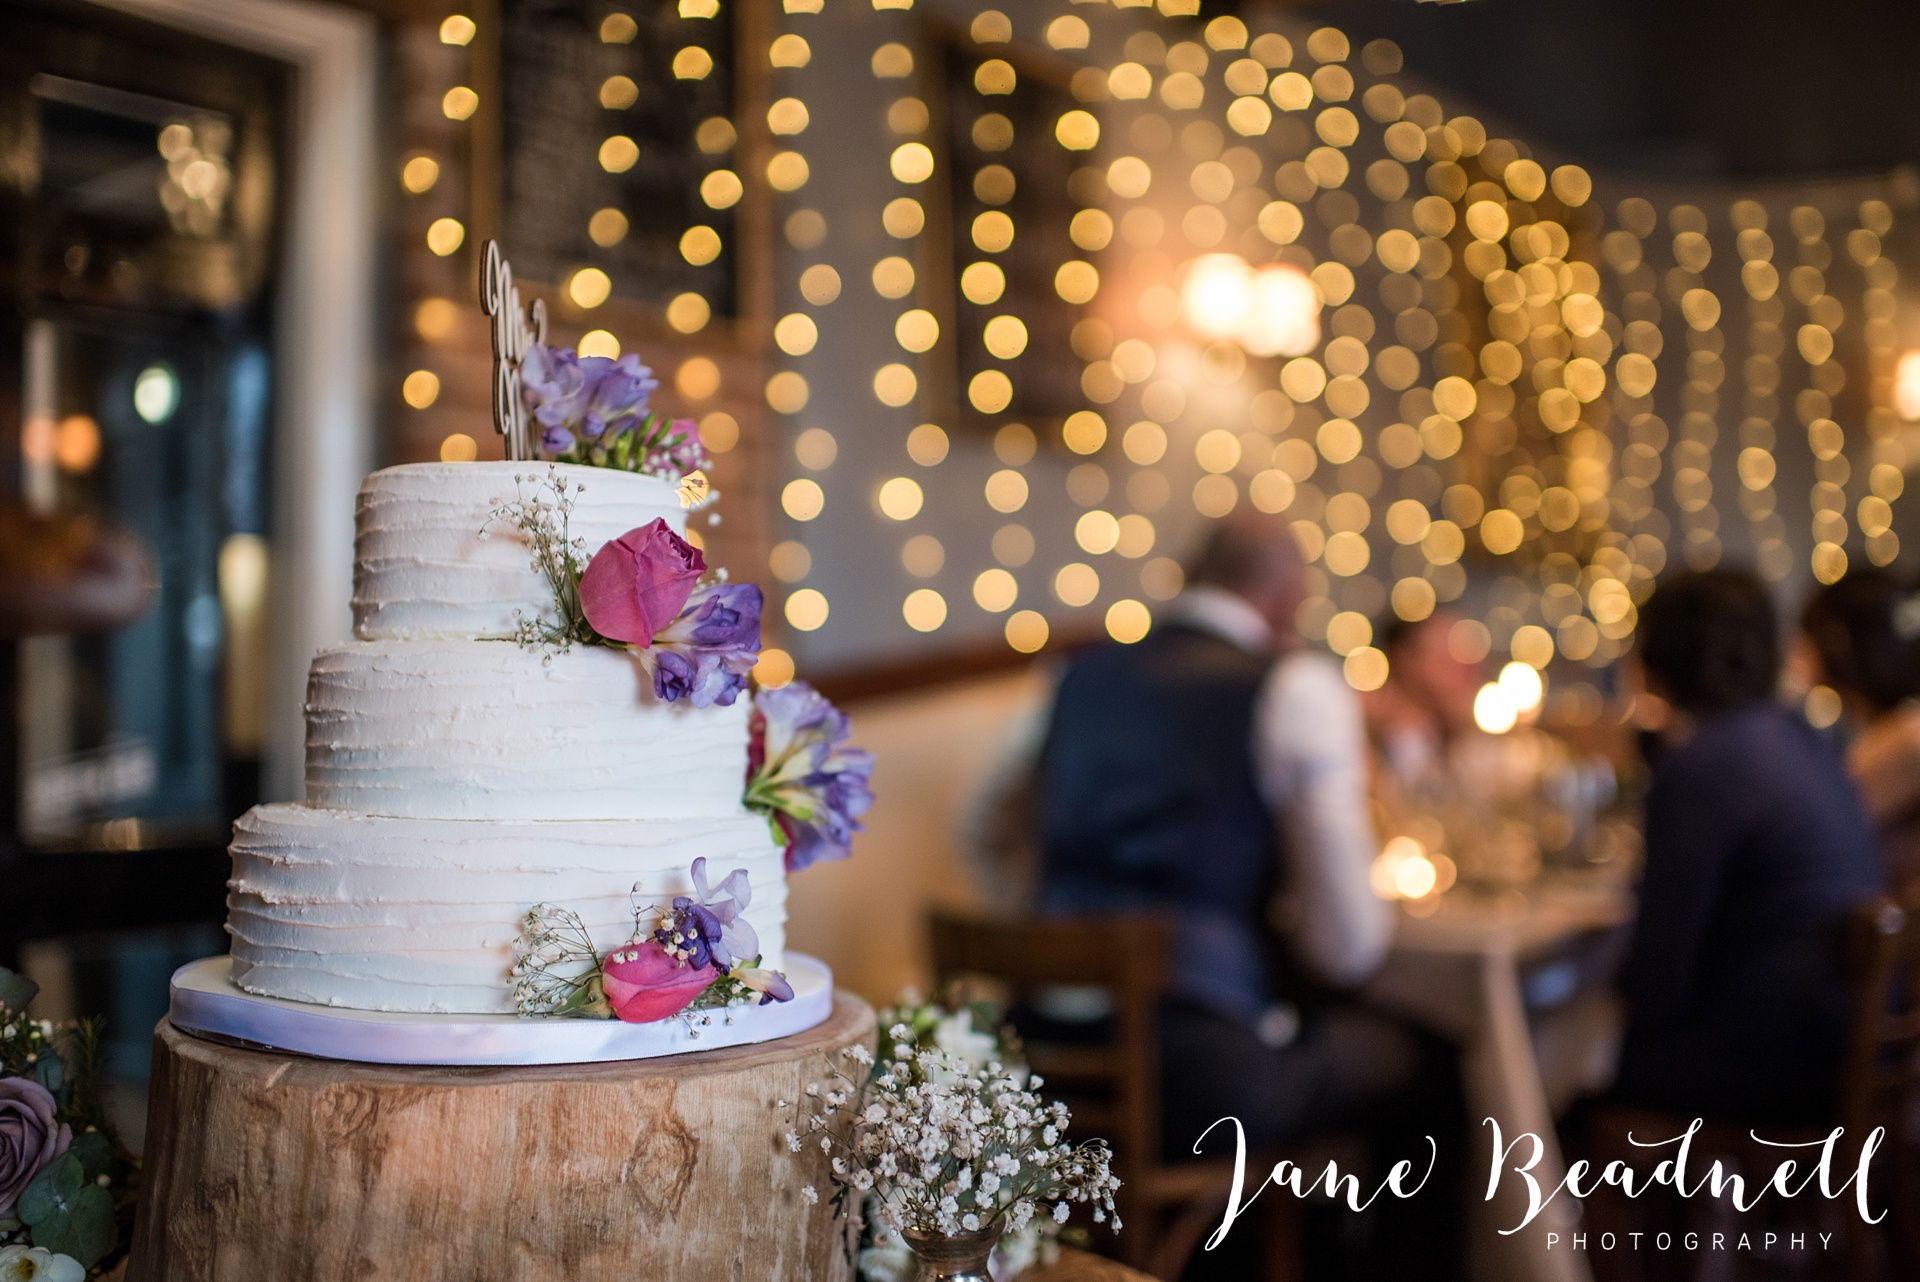 Wedding photography Cross Keys Leeds Wedding Jane Beadnell Photography_0130